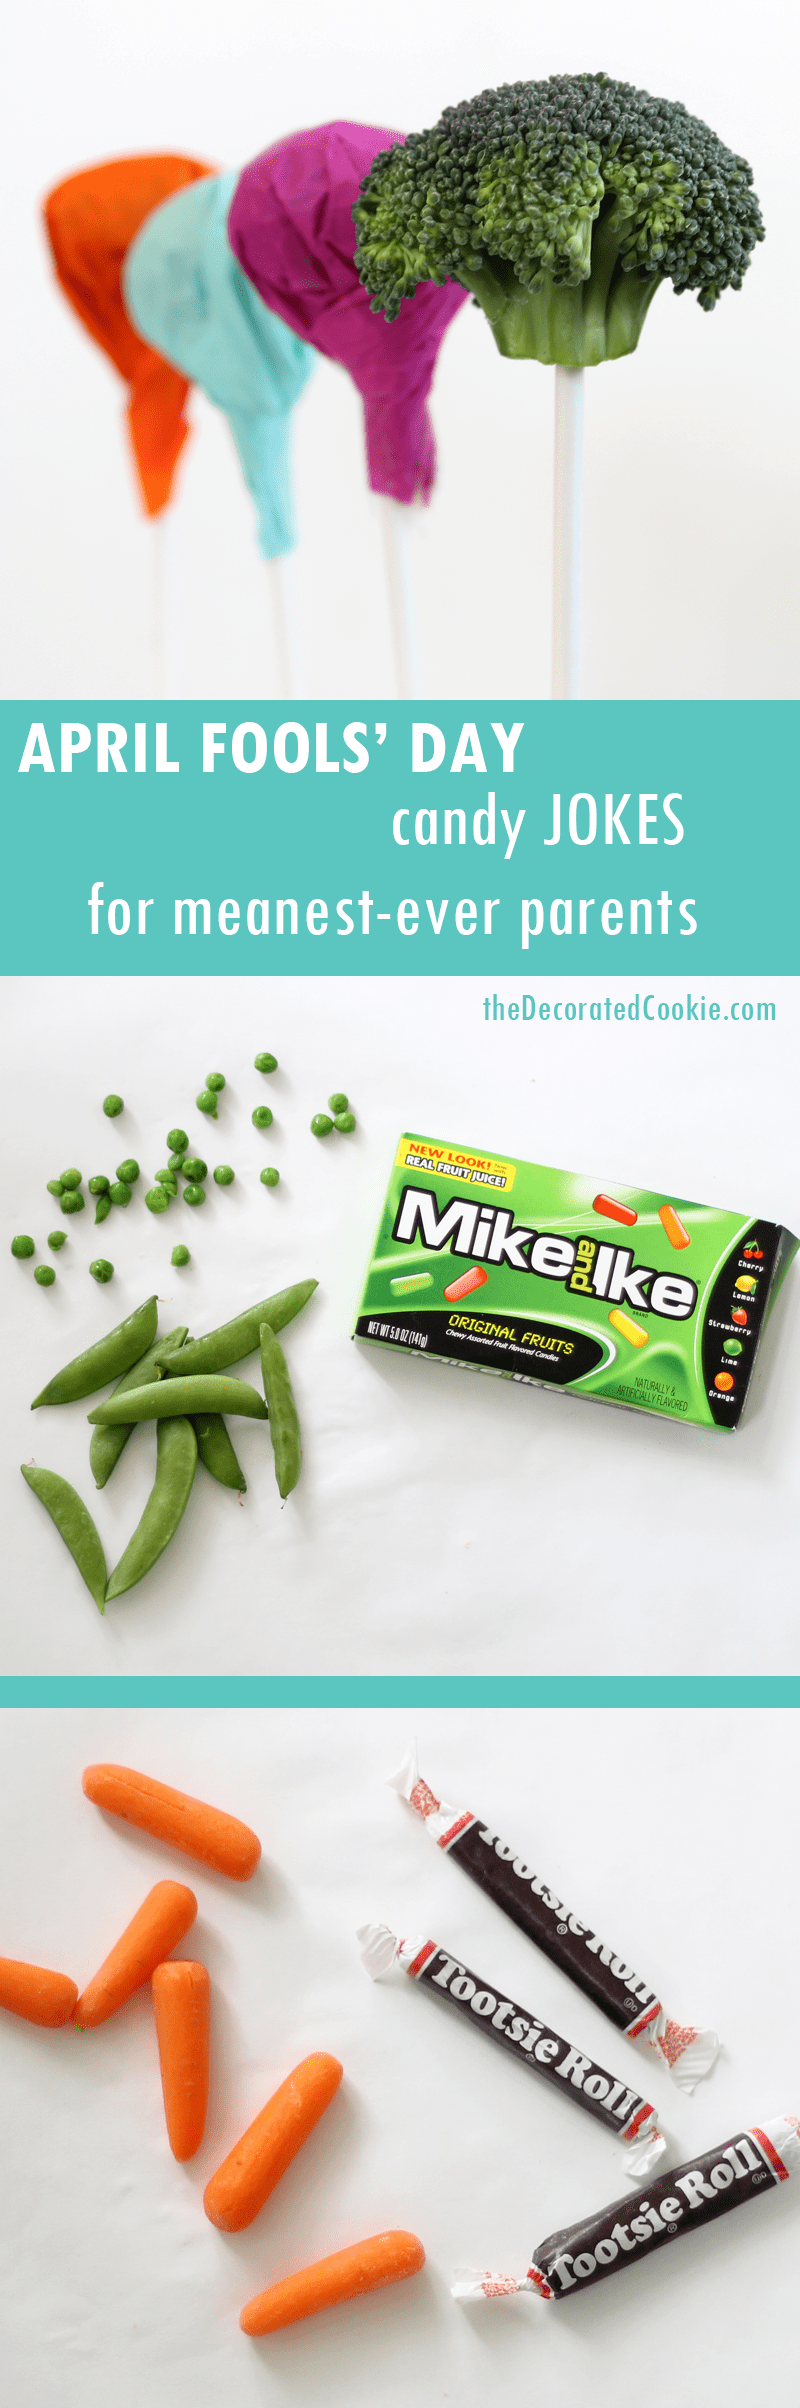 How to make april fools day chocolate bunny filled with veggies - April Fools Day Candy Jokes With Hidden Vegetables For Kids